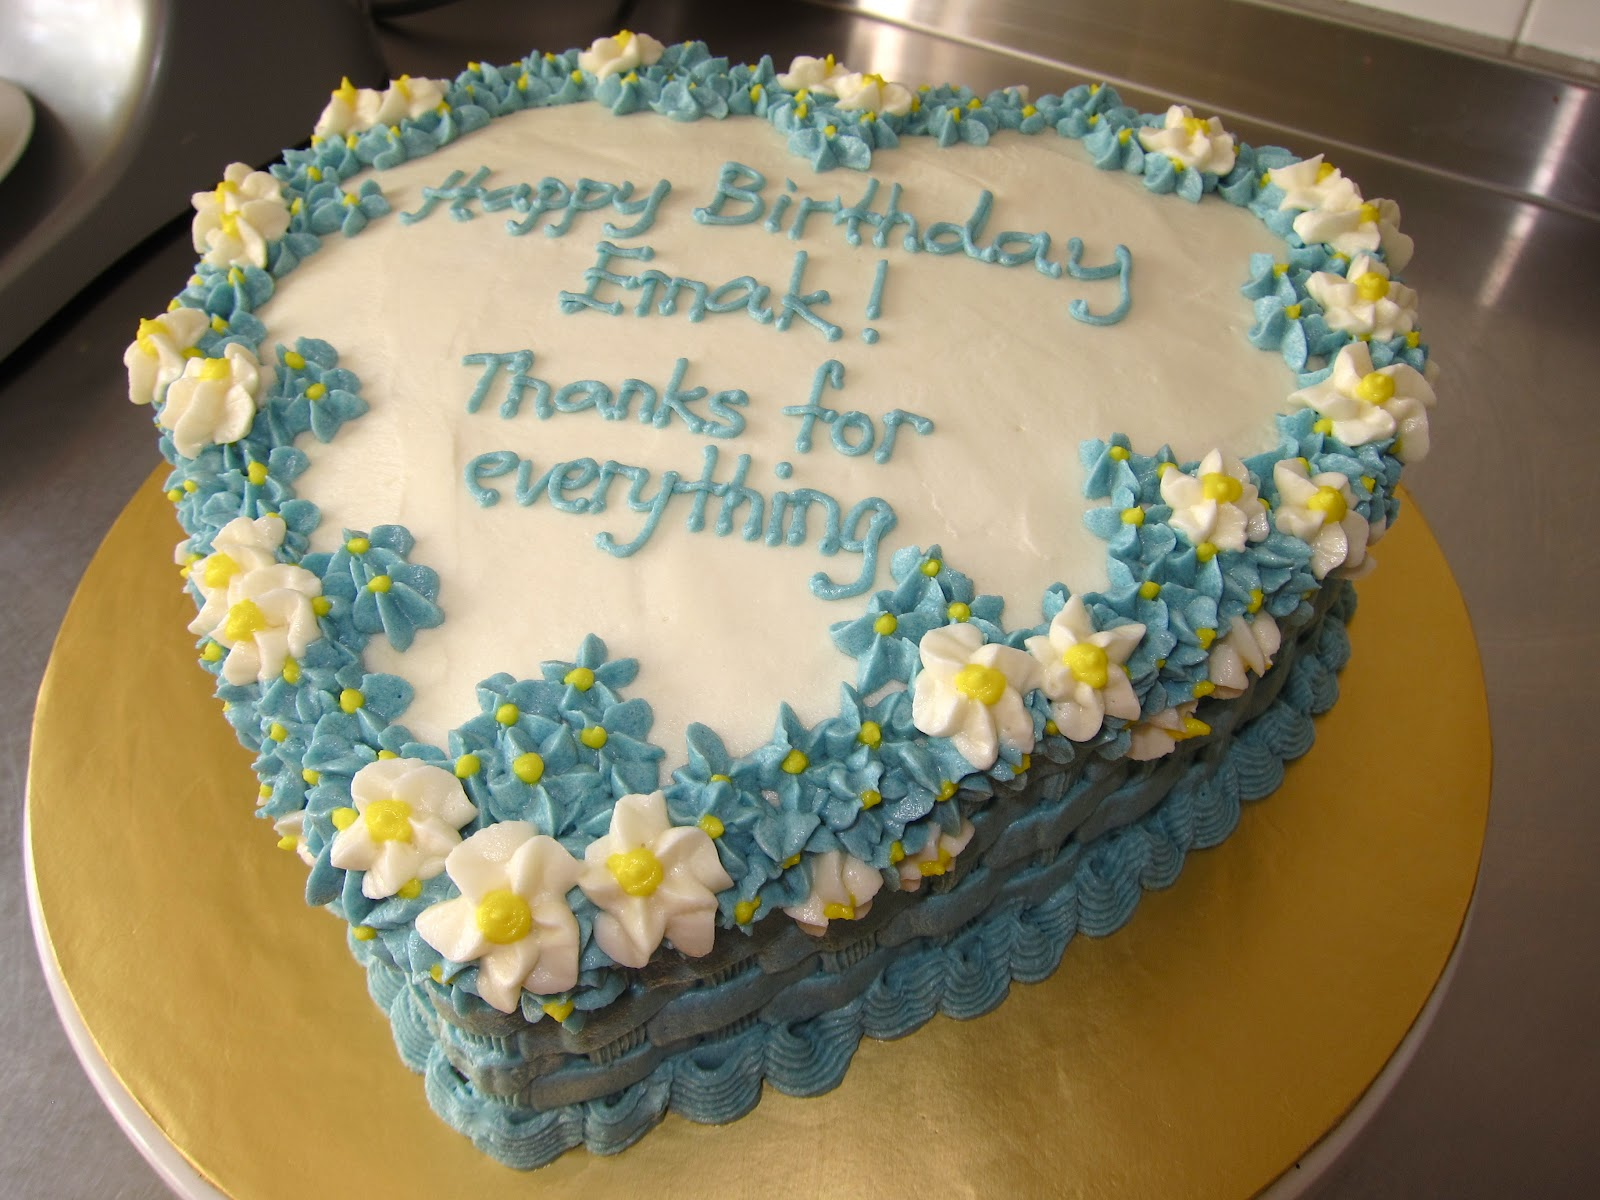 Easy Birthday Cake Ideas For Husband Image Inspiration of Cake and